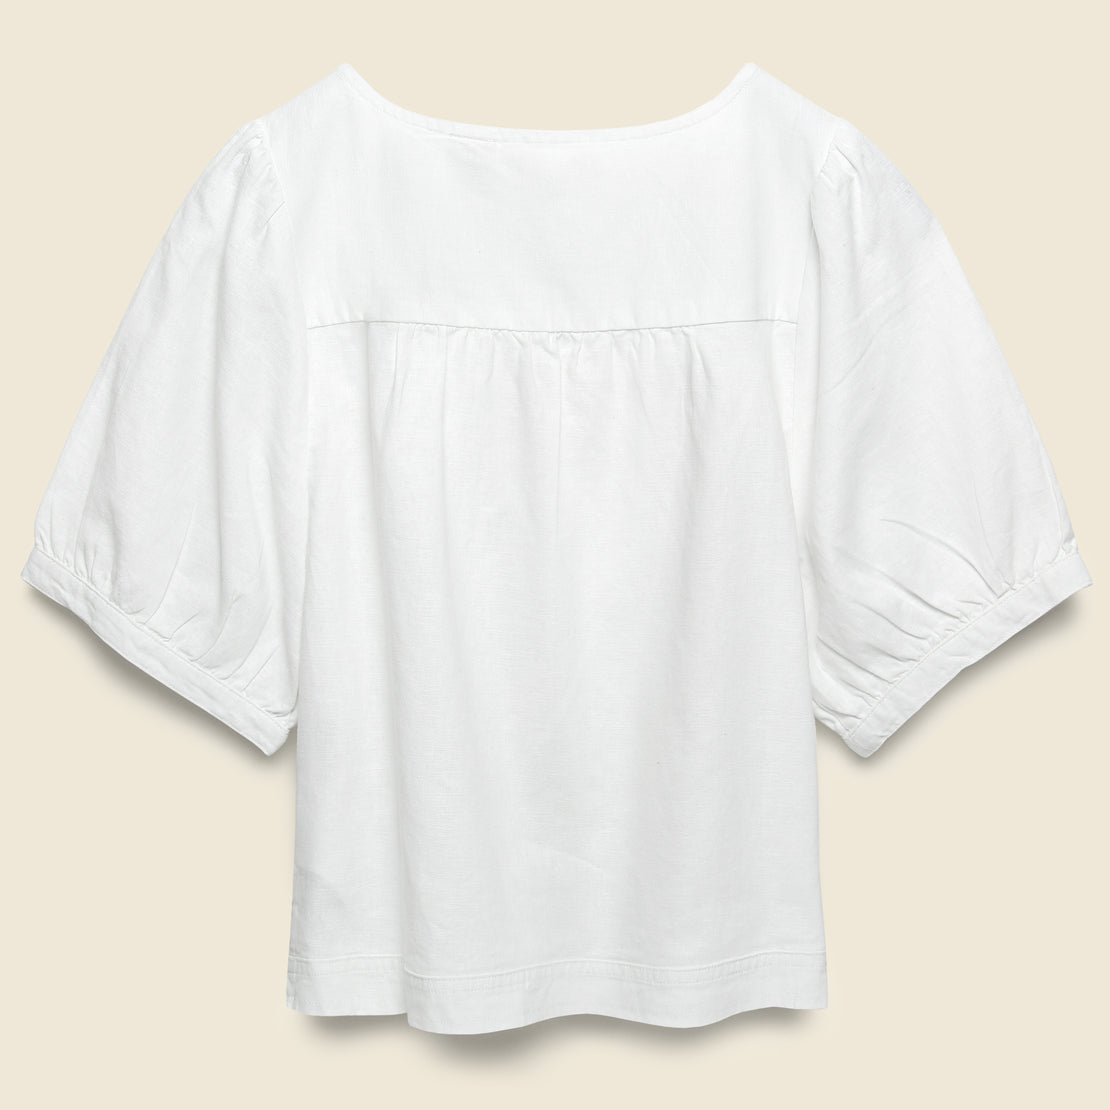 Simone Top - Bright White